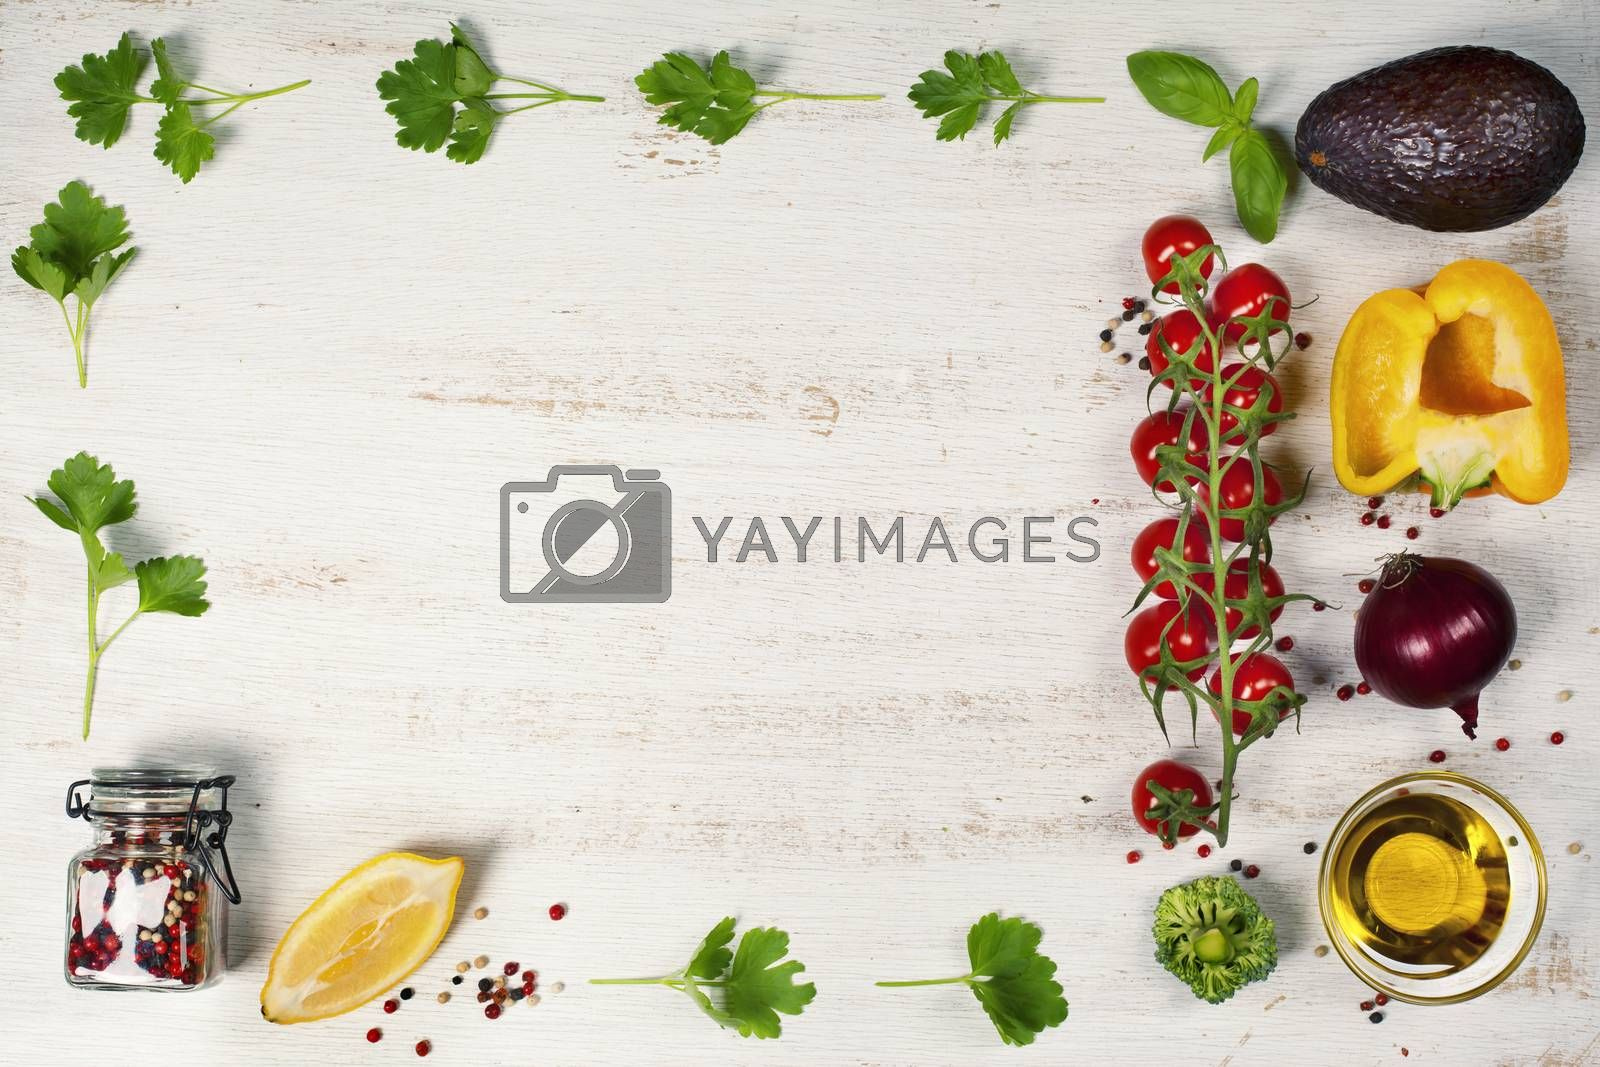 Healthy Food Background Royalty Free Stock Image Stock Photos Royalty Free Images Vectors Footage Yayimages